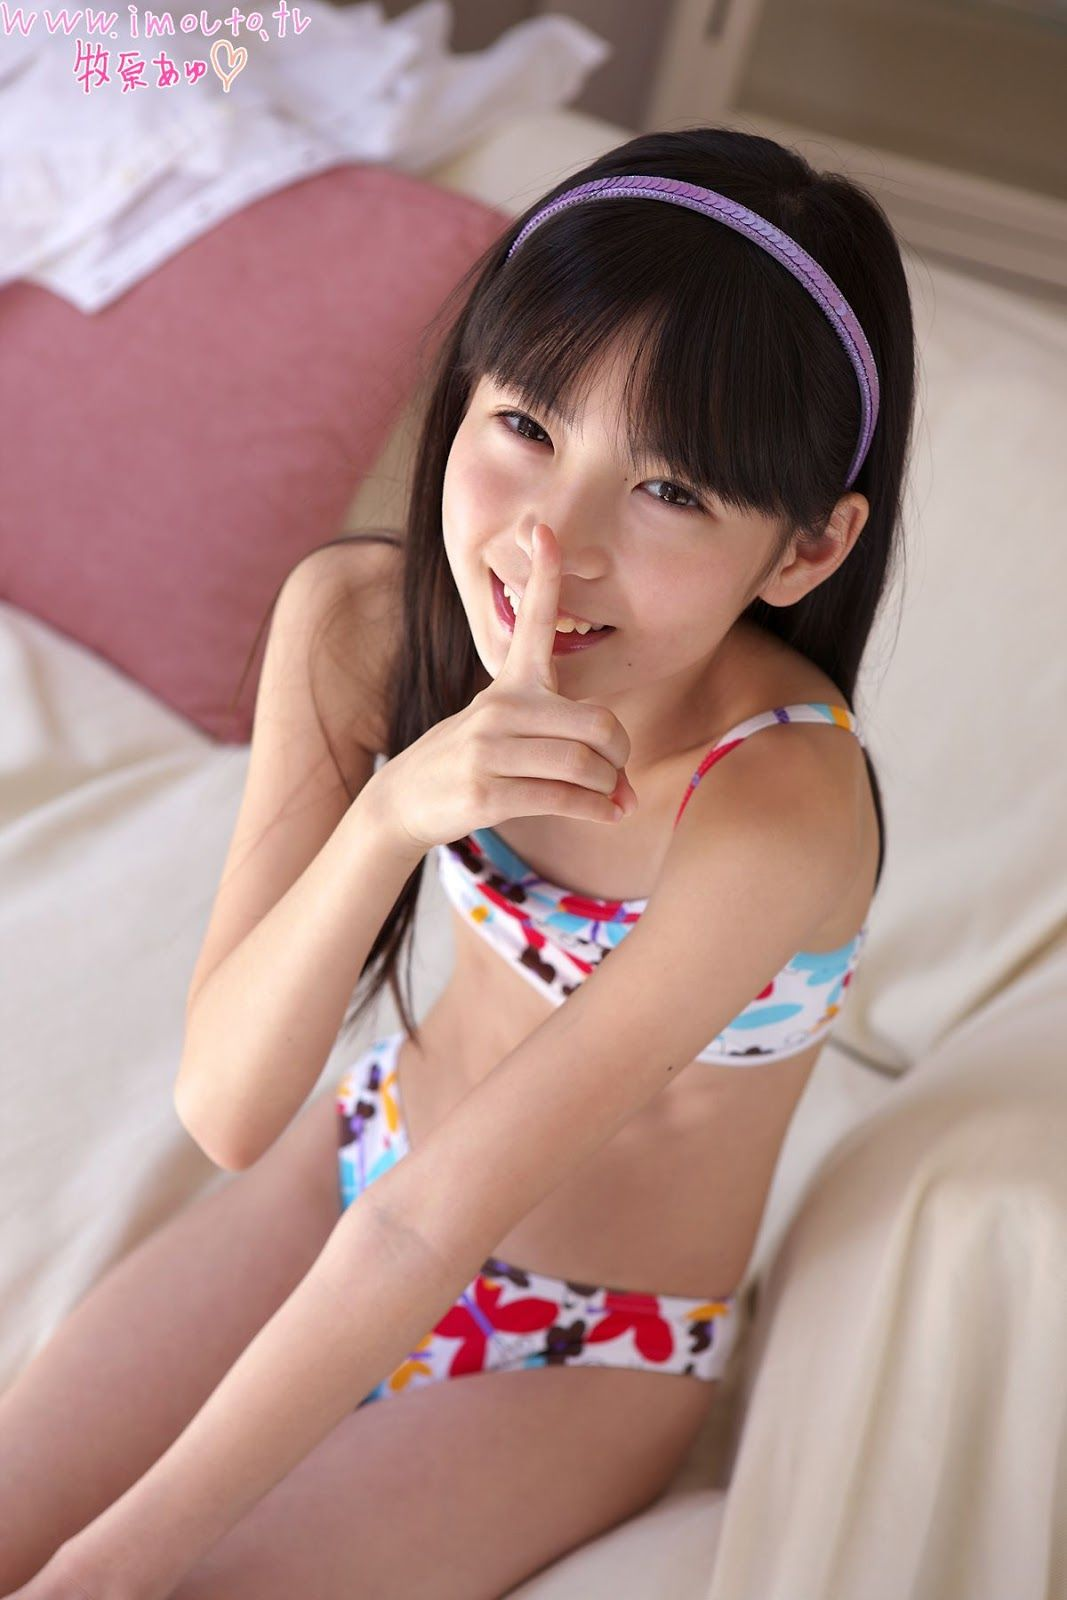 u15.info junior idol ayu Ayu Makihara 牧原あゆ, Imouto.tv (junshin2_makihara01) Junior Idol U15 Part03